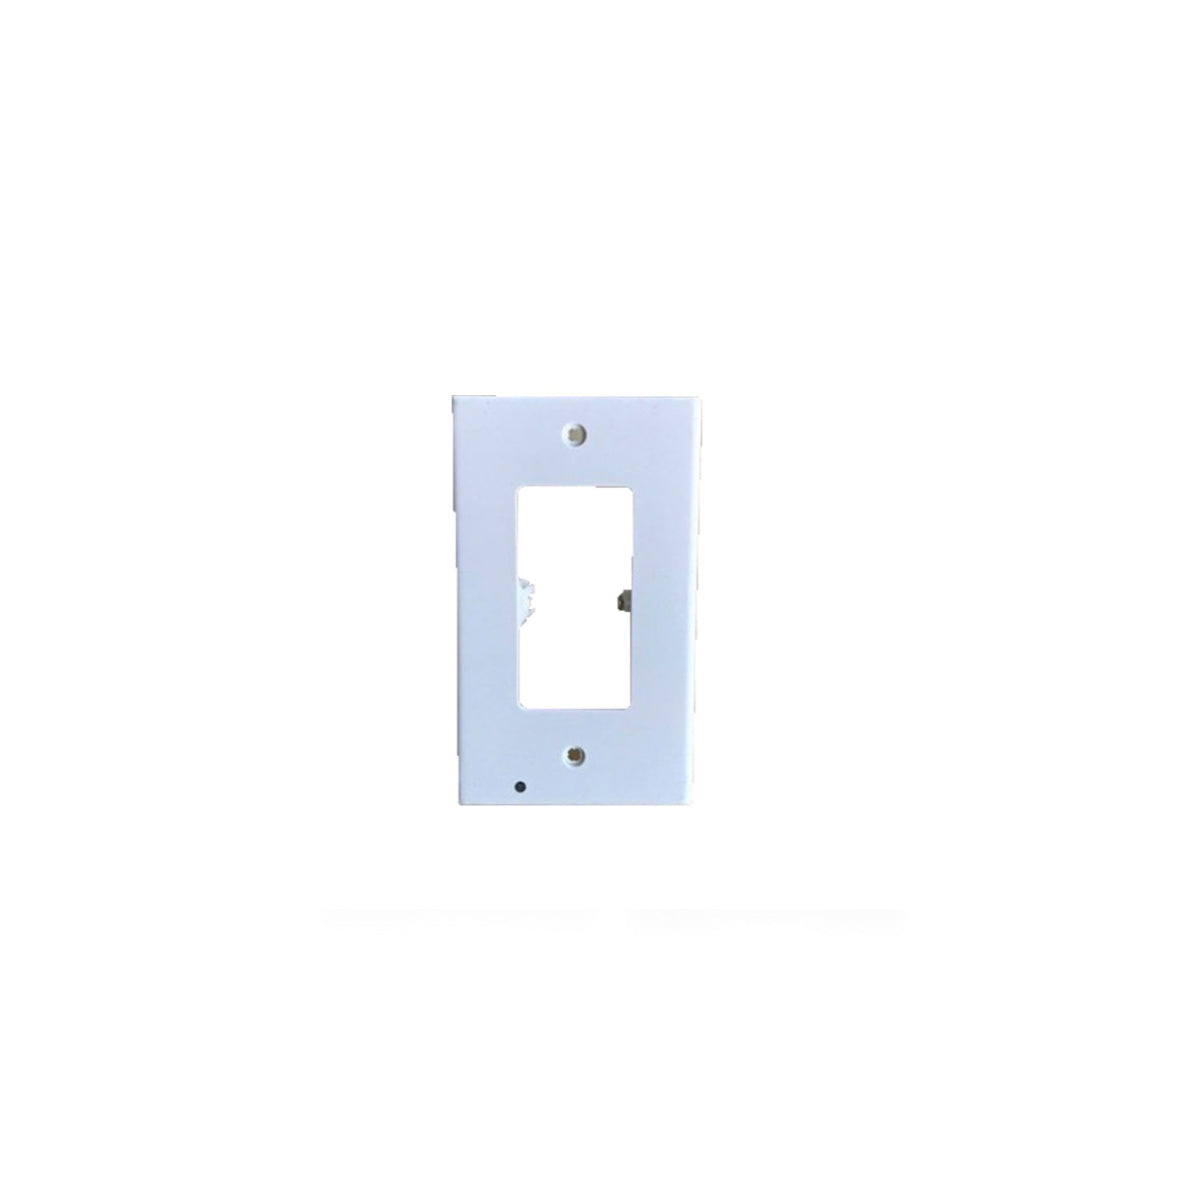 shopify-Path Lighter Auto Motion Wall Plate LED Light  2- PACK-5